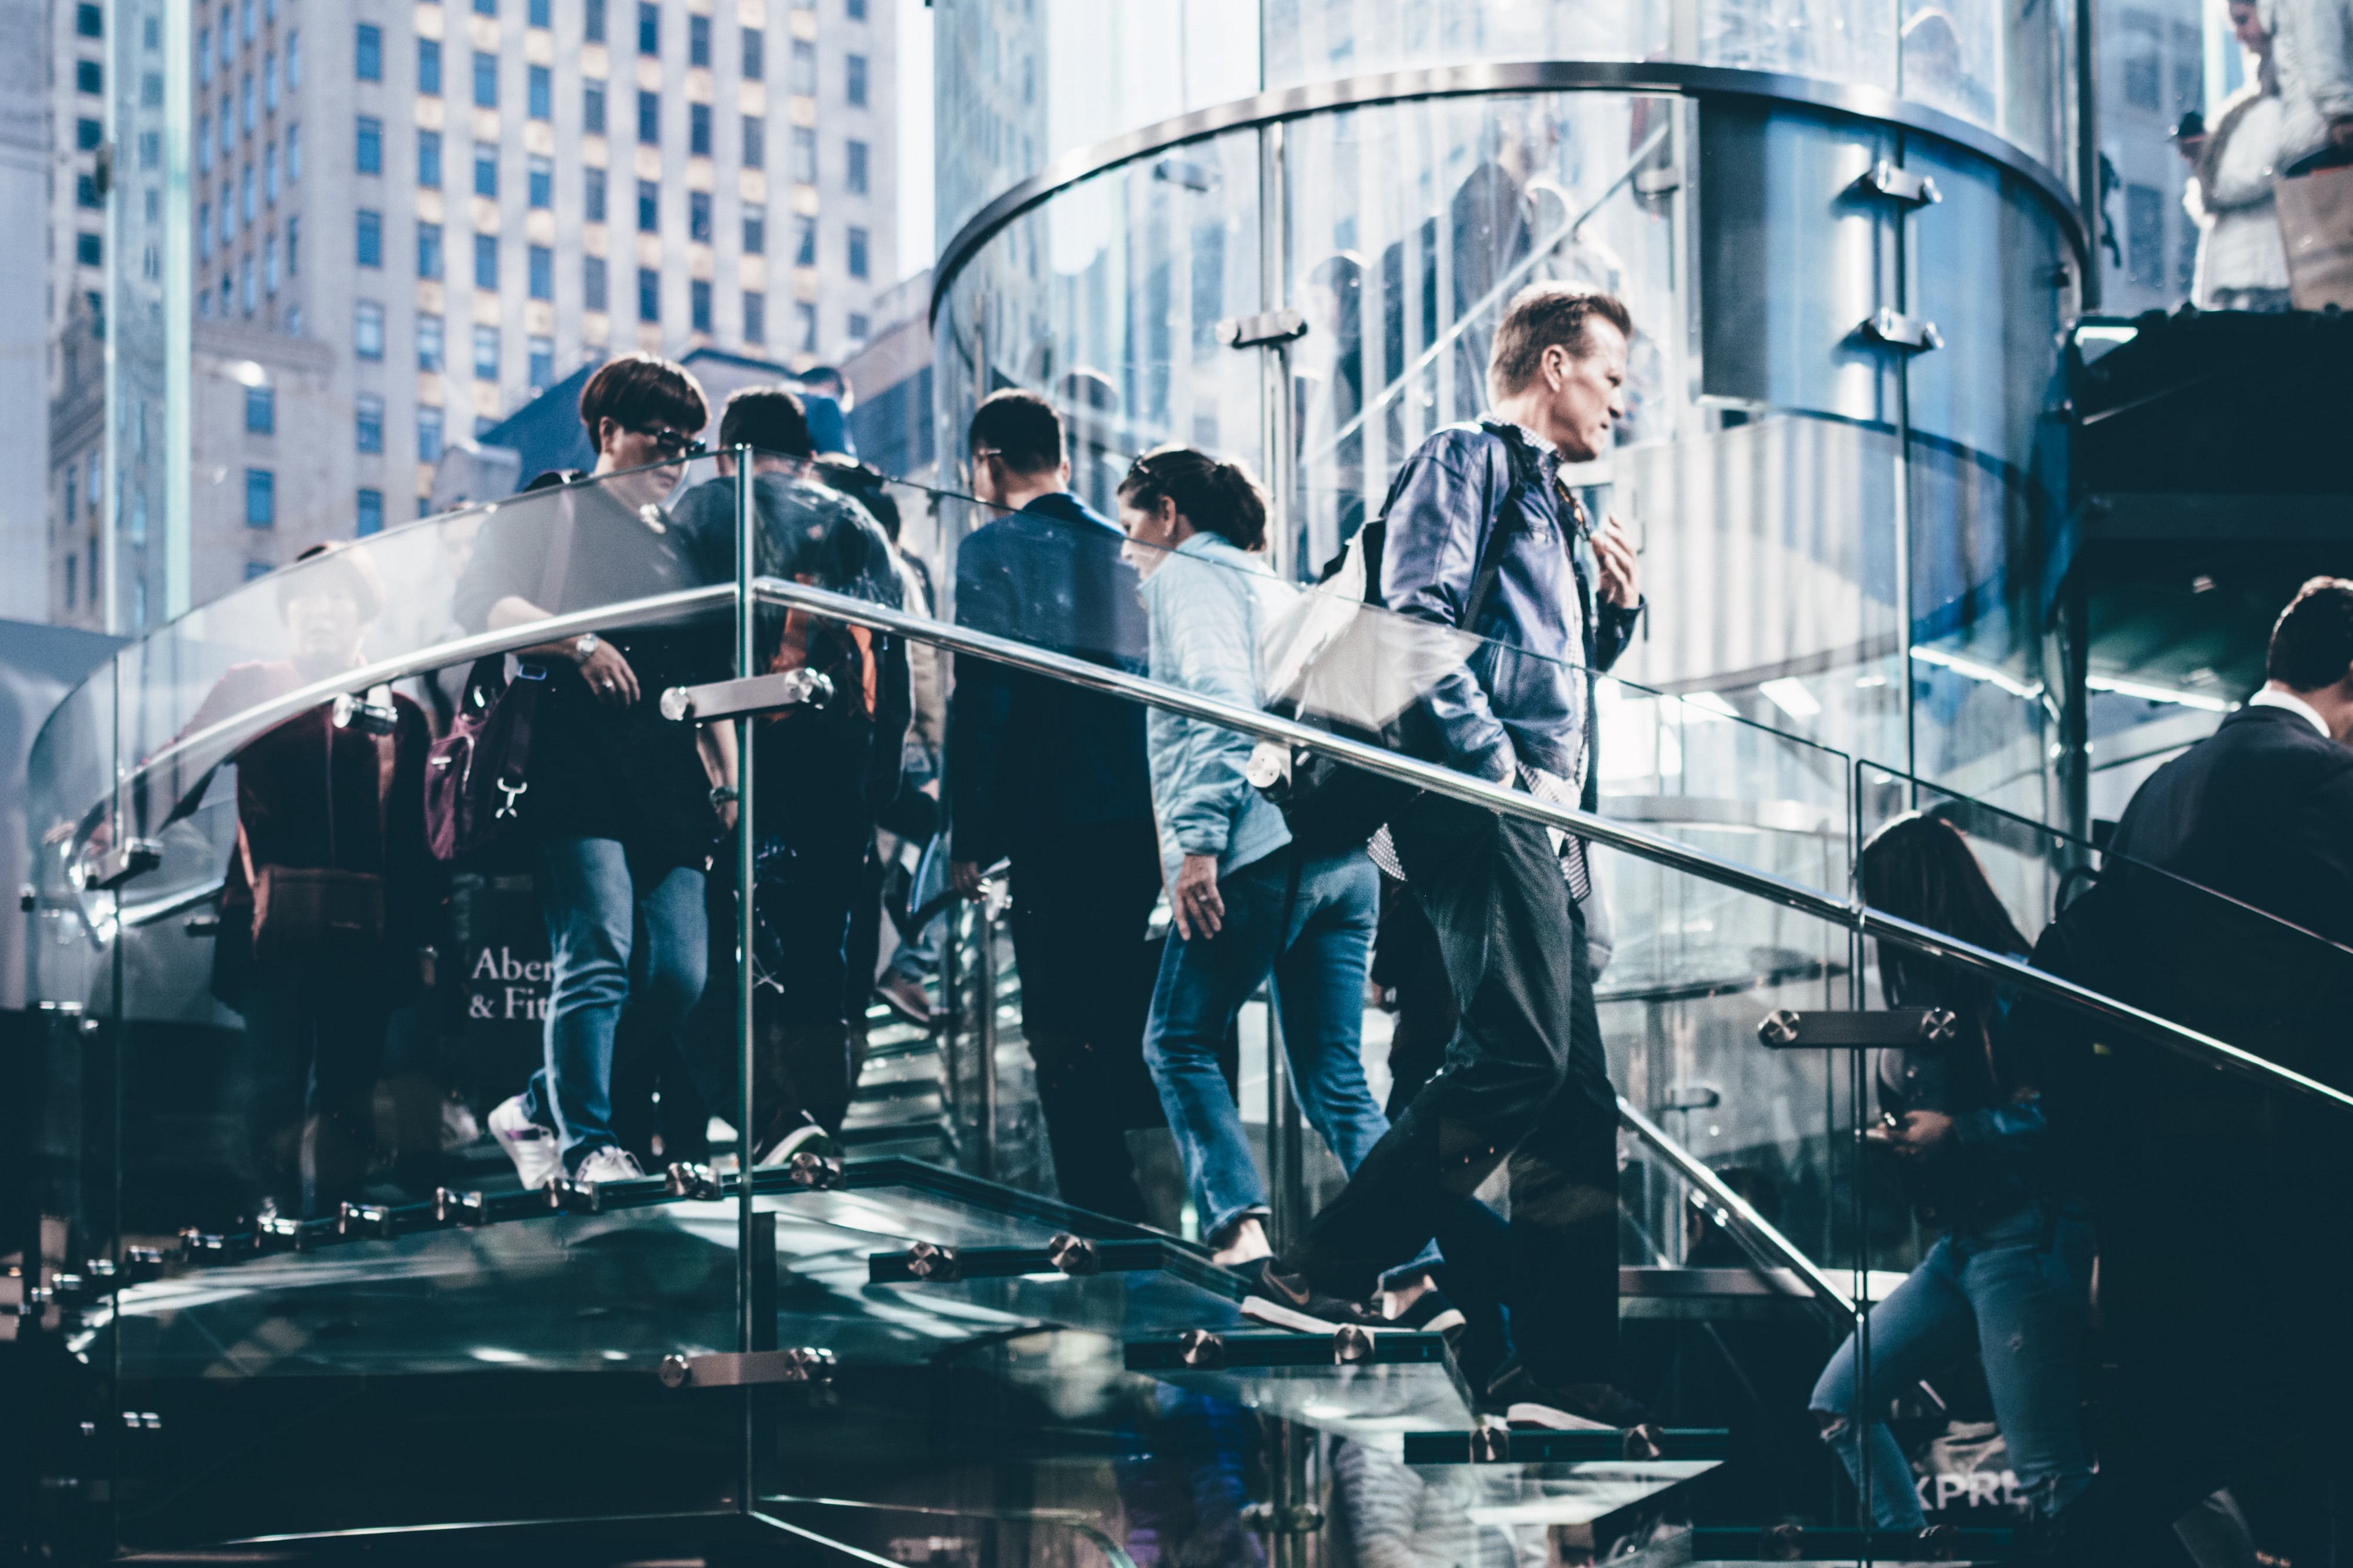 People walking on outside glass staircase in city surrounded by tall buildings